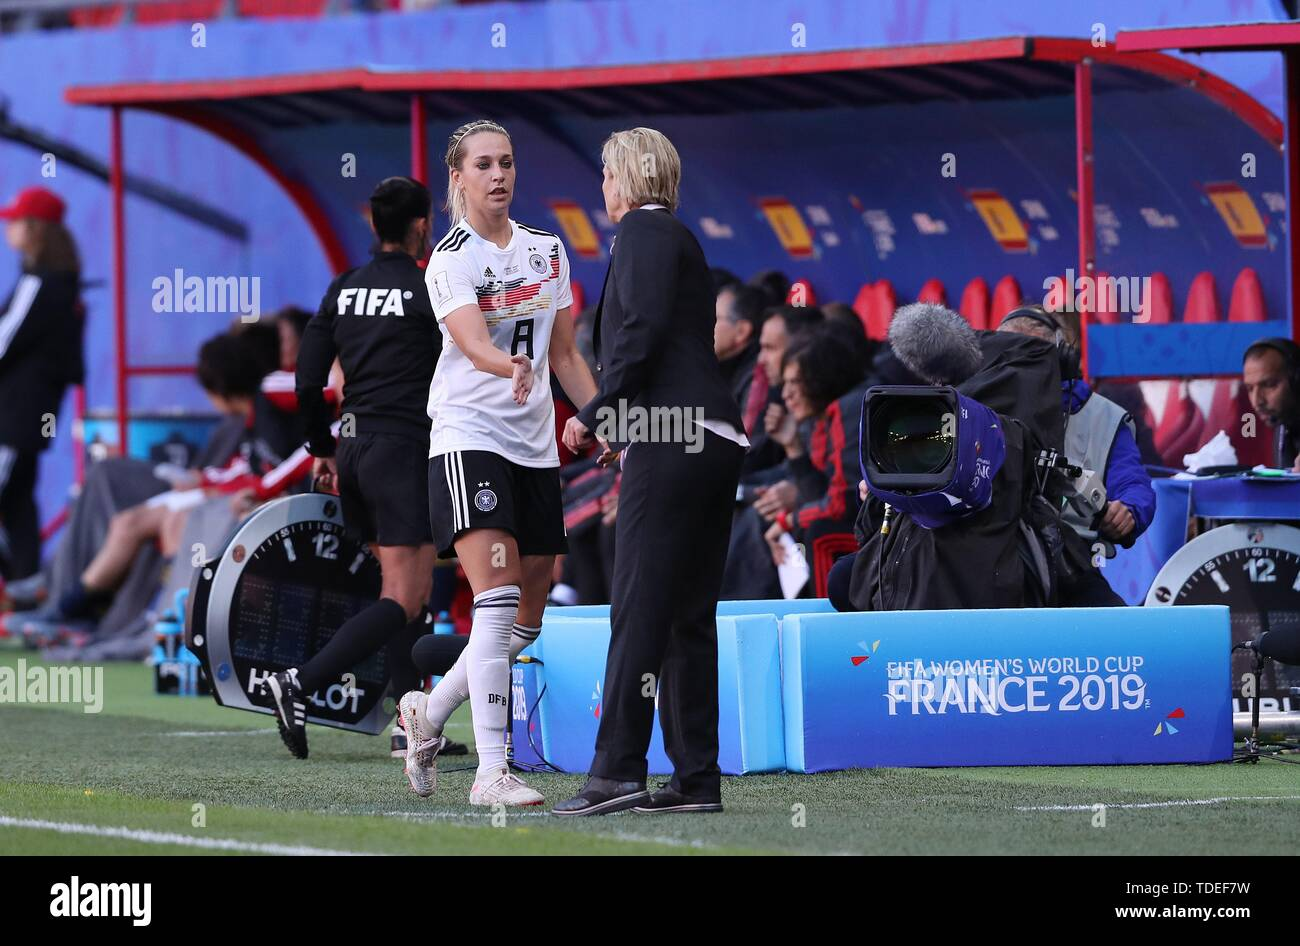 Valenciennes, Frankreich. 12th June, 2019. firo: 12.06.2019, Football, Women, Women, 2018/2019, FIFA Women's World Cup, Women's World Cup, National Team, Germany, GER - Spain, ESP 1: 0 Lena GOEssLING, GER Substitutions by Federal Coach VOSS-TECKLENBURG   usage worldwide Credit: dpa/Alamy Live News - Stock Image